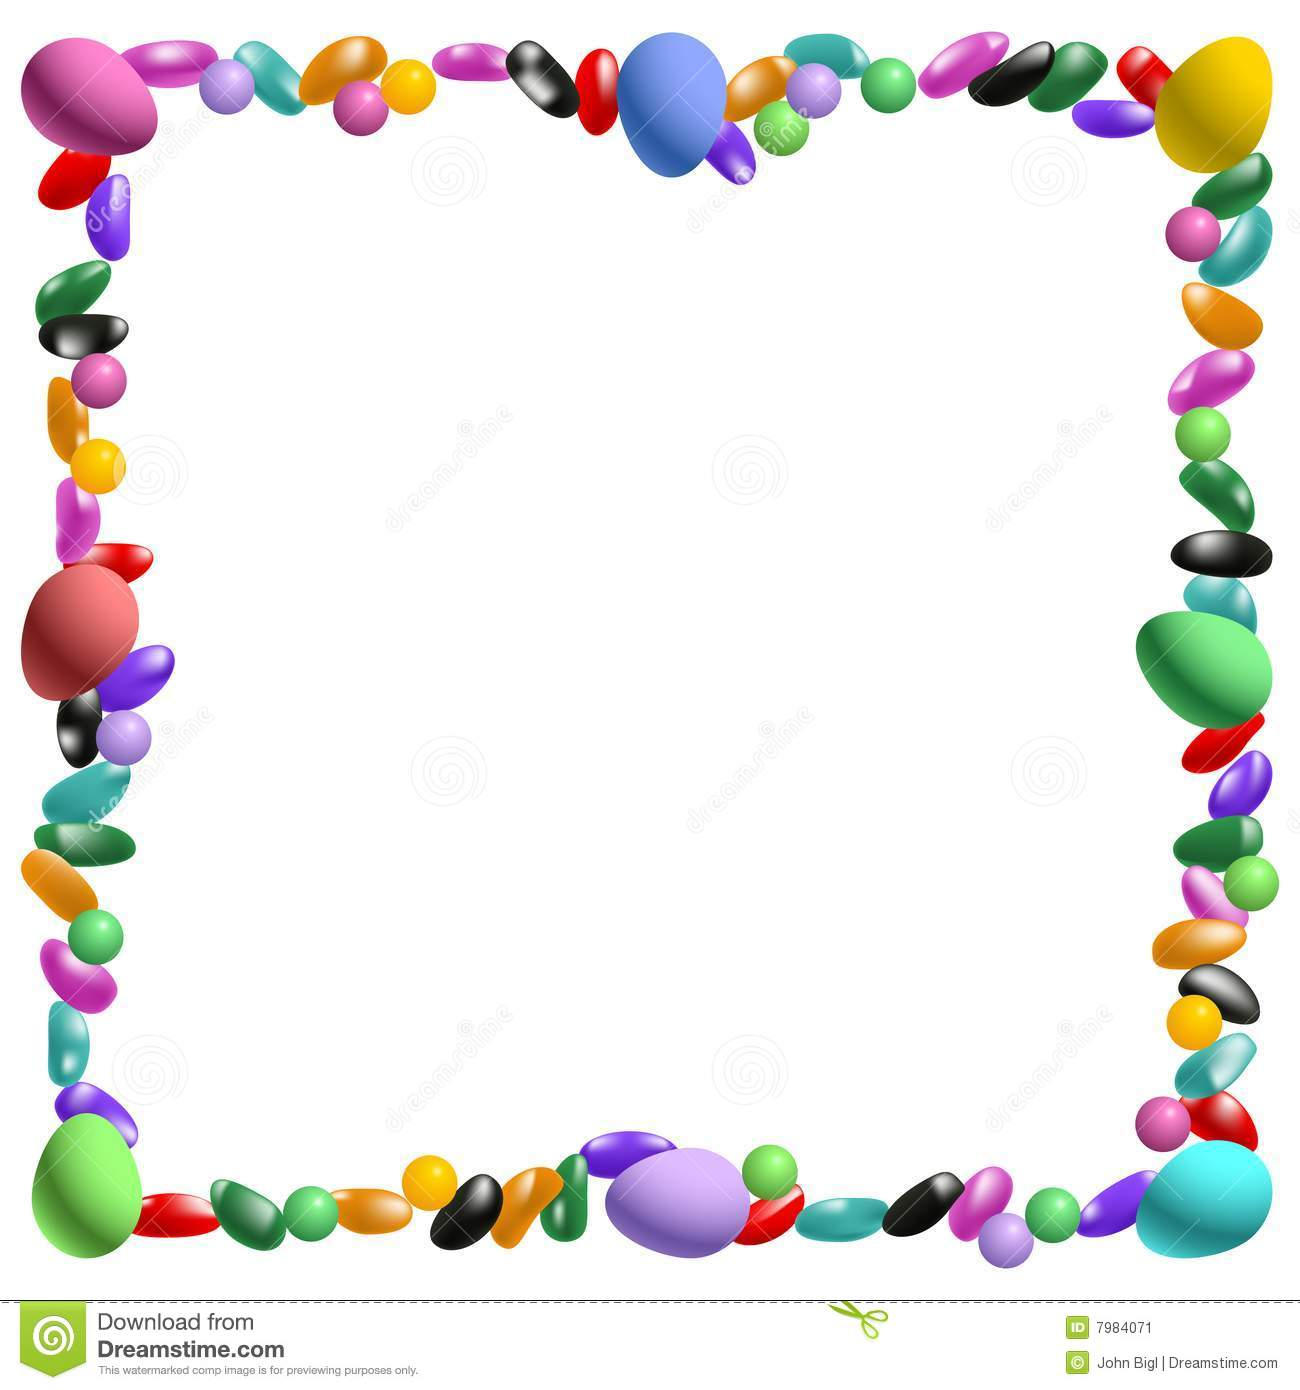 Jelly Bean Border Clip Art - More information